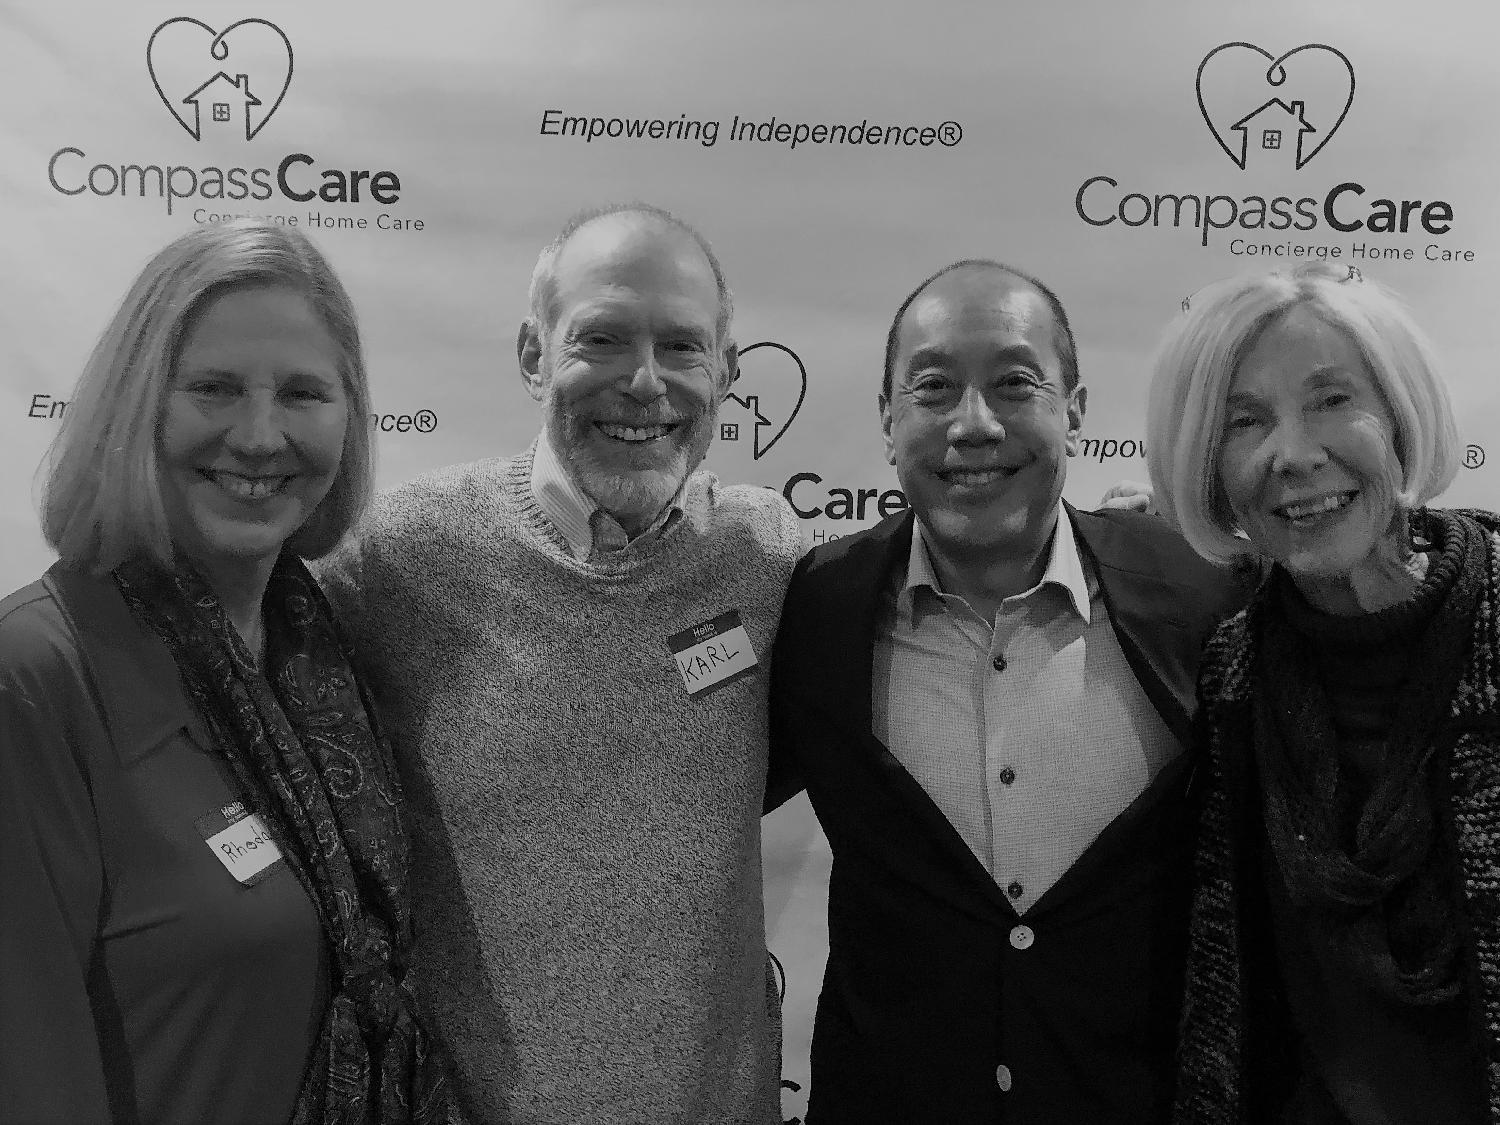 Compass Care Photo